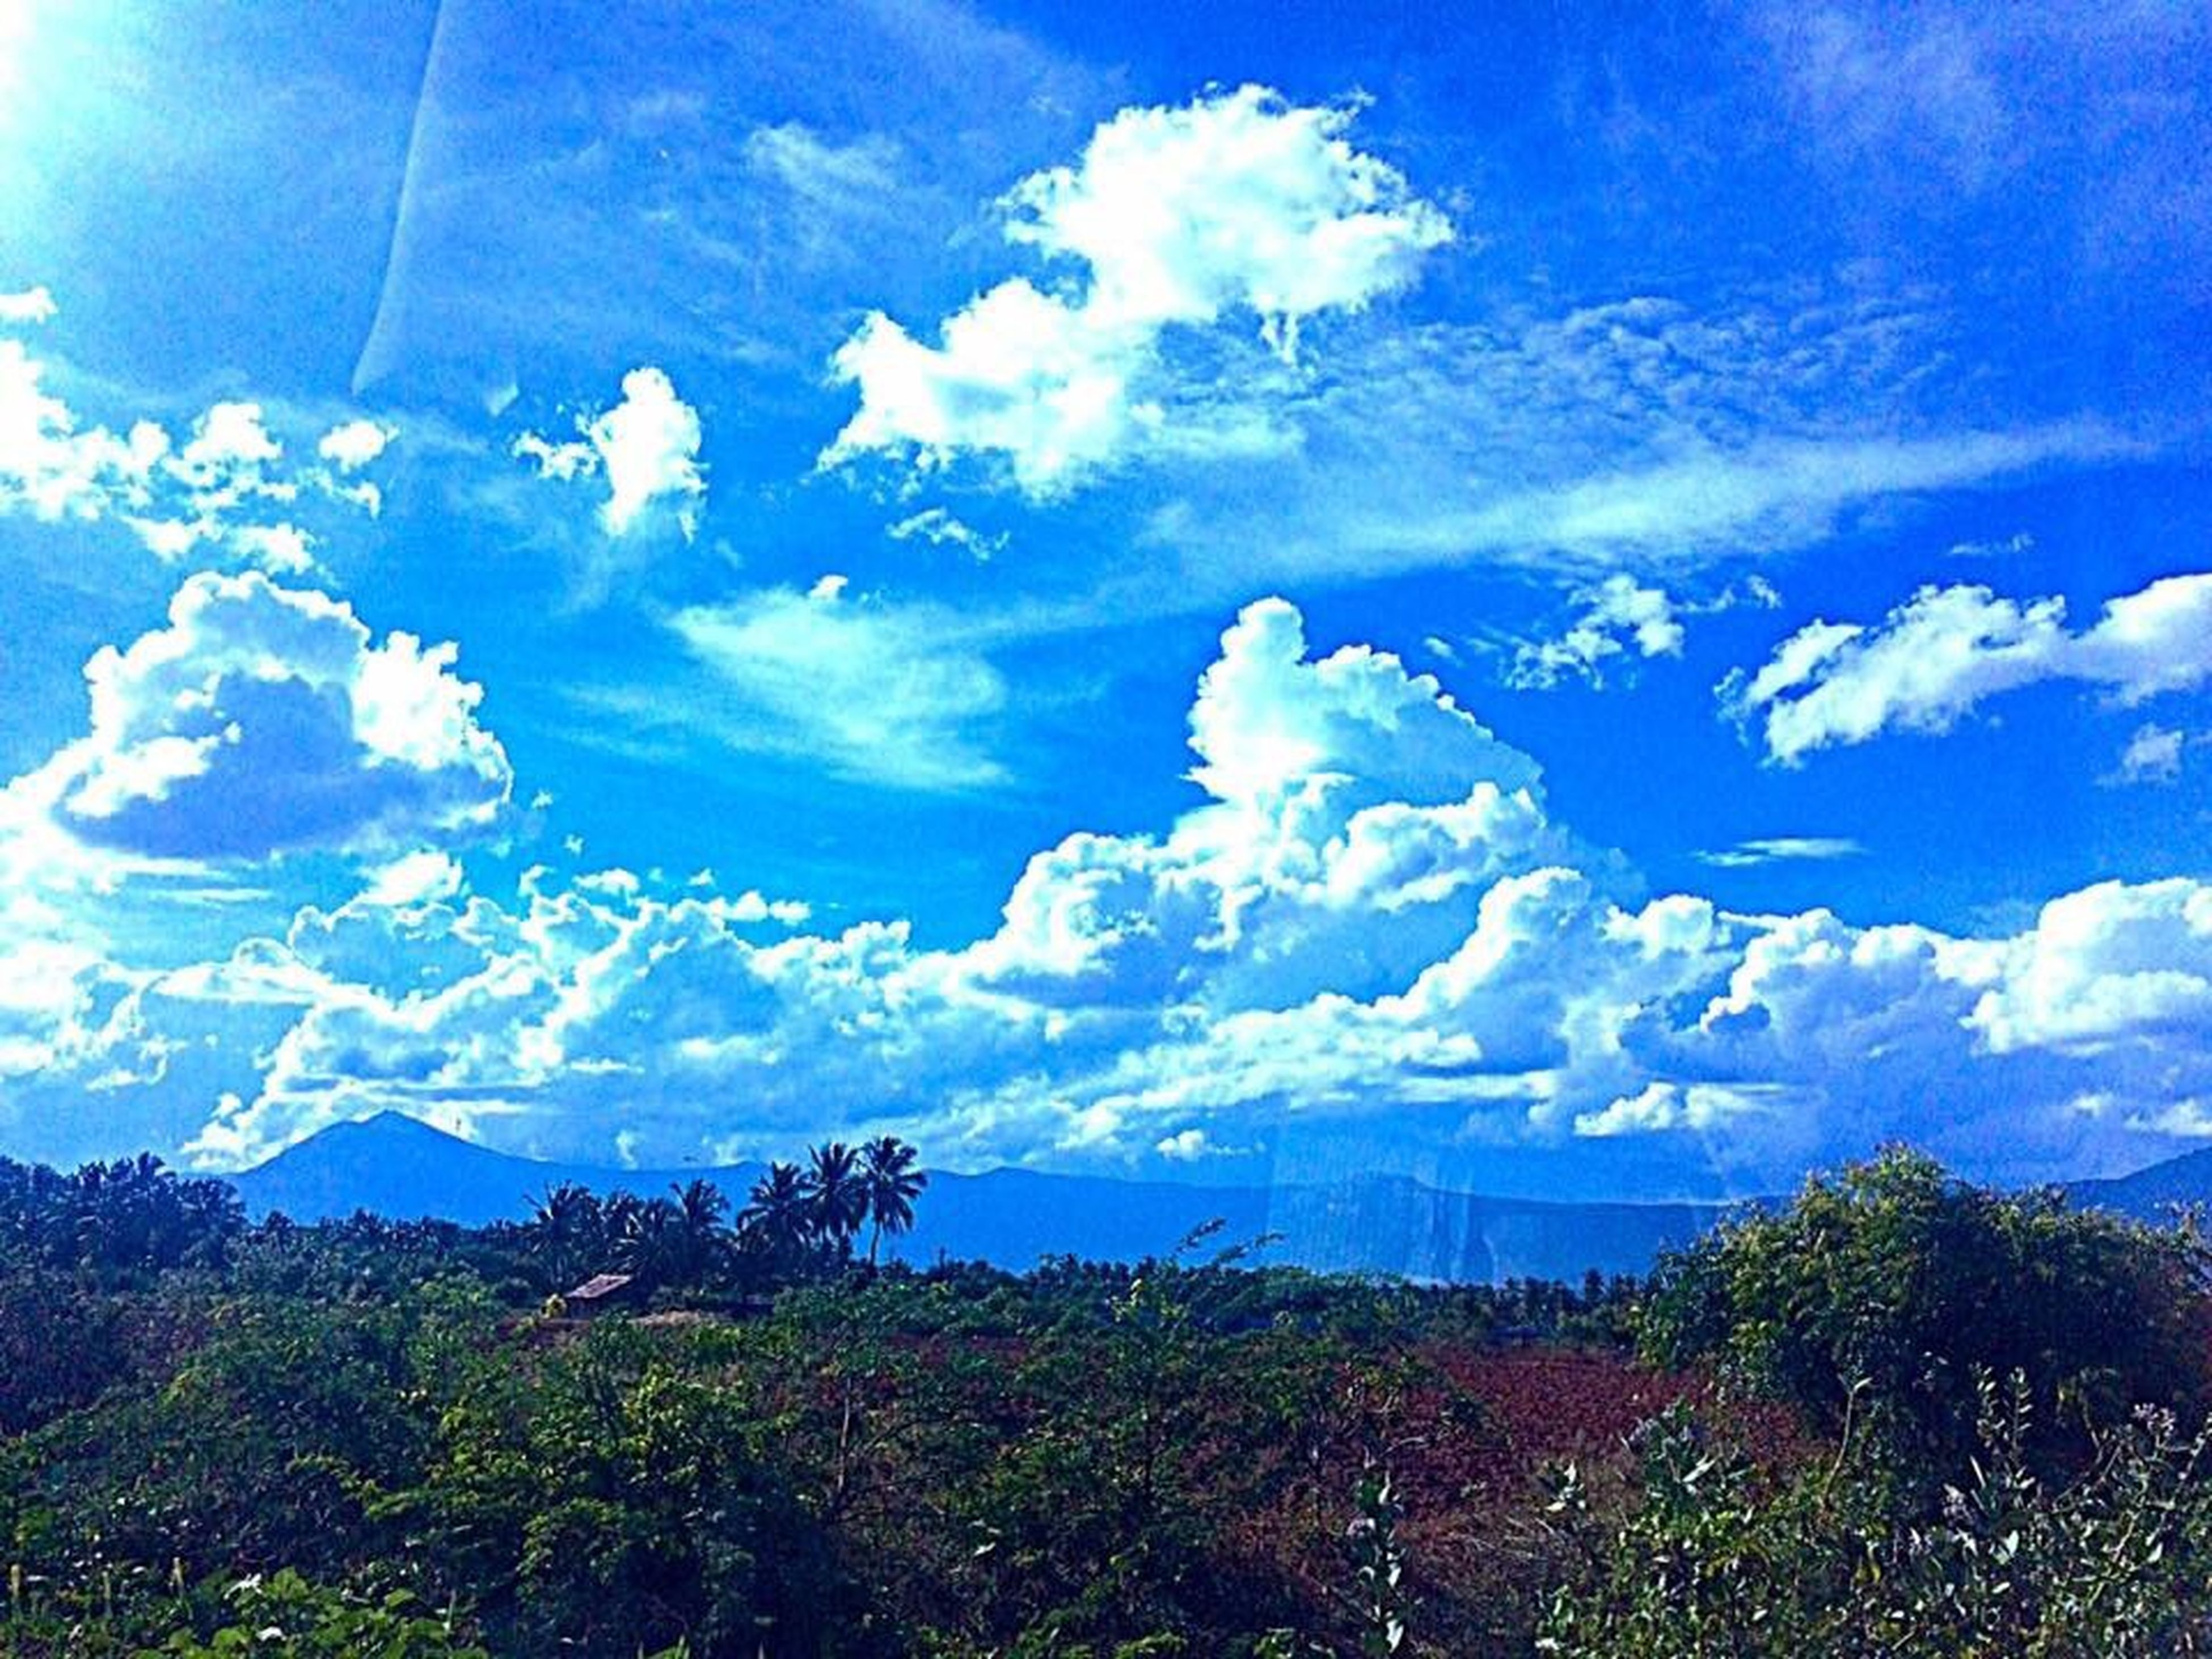 blue, sky, cloud - sky, nature, outdoors, low angle view, no people, beauty in nature, scenics, tranquility, tranquil scene, tree, day, landscape